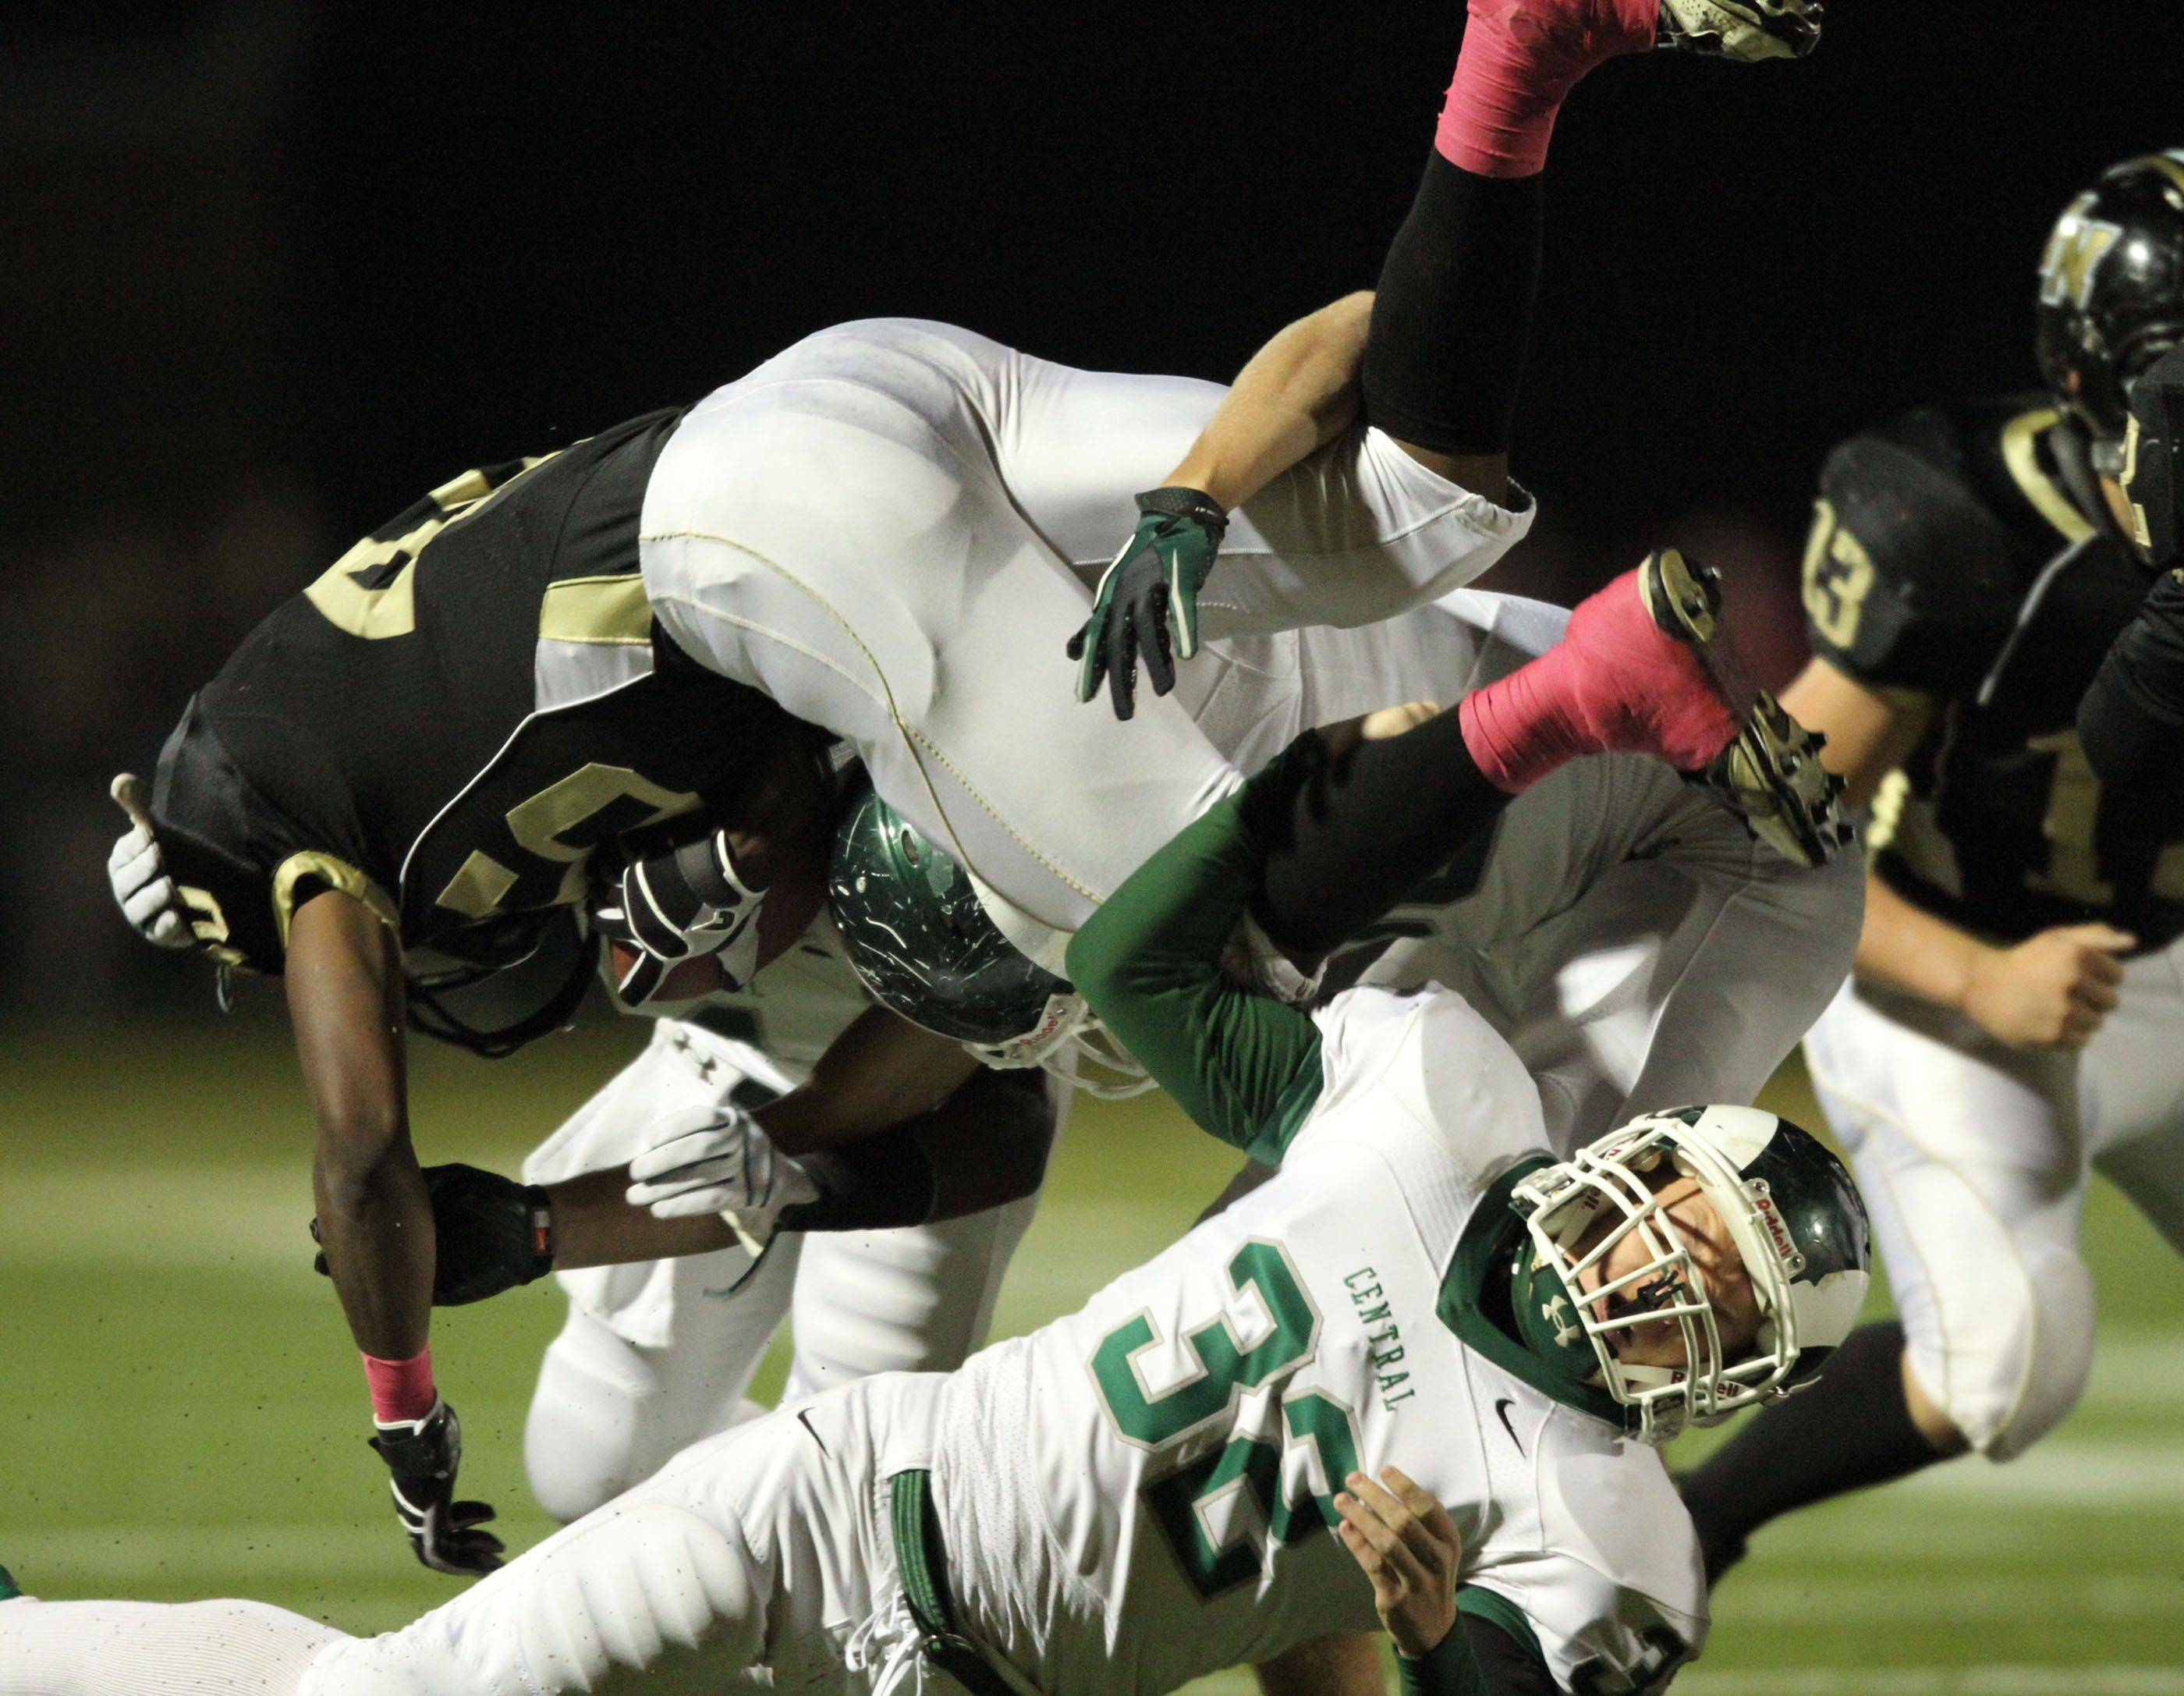 WEEK 8- Grayslake North's Kurtis Boyd is upended on a kickoff return by Grayslake Central defender CJ Stempeck.